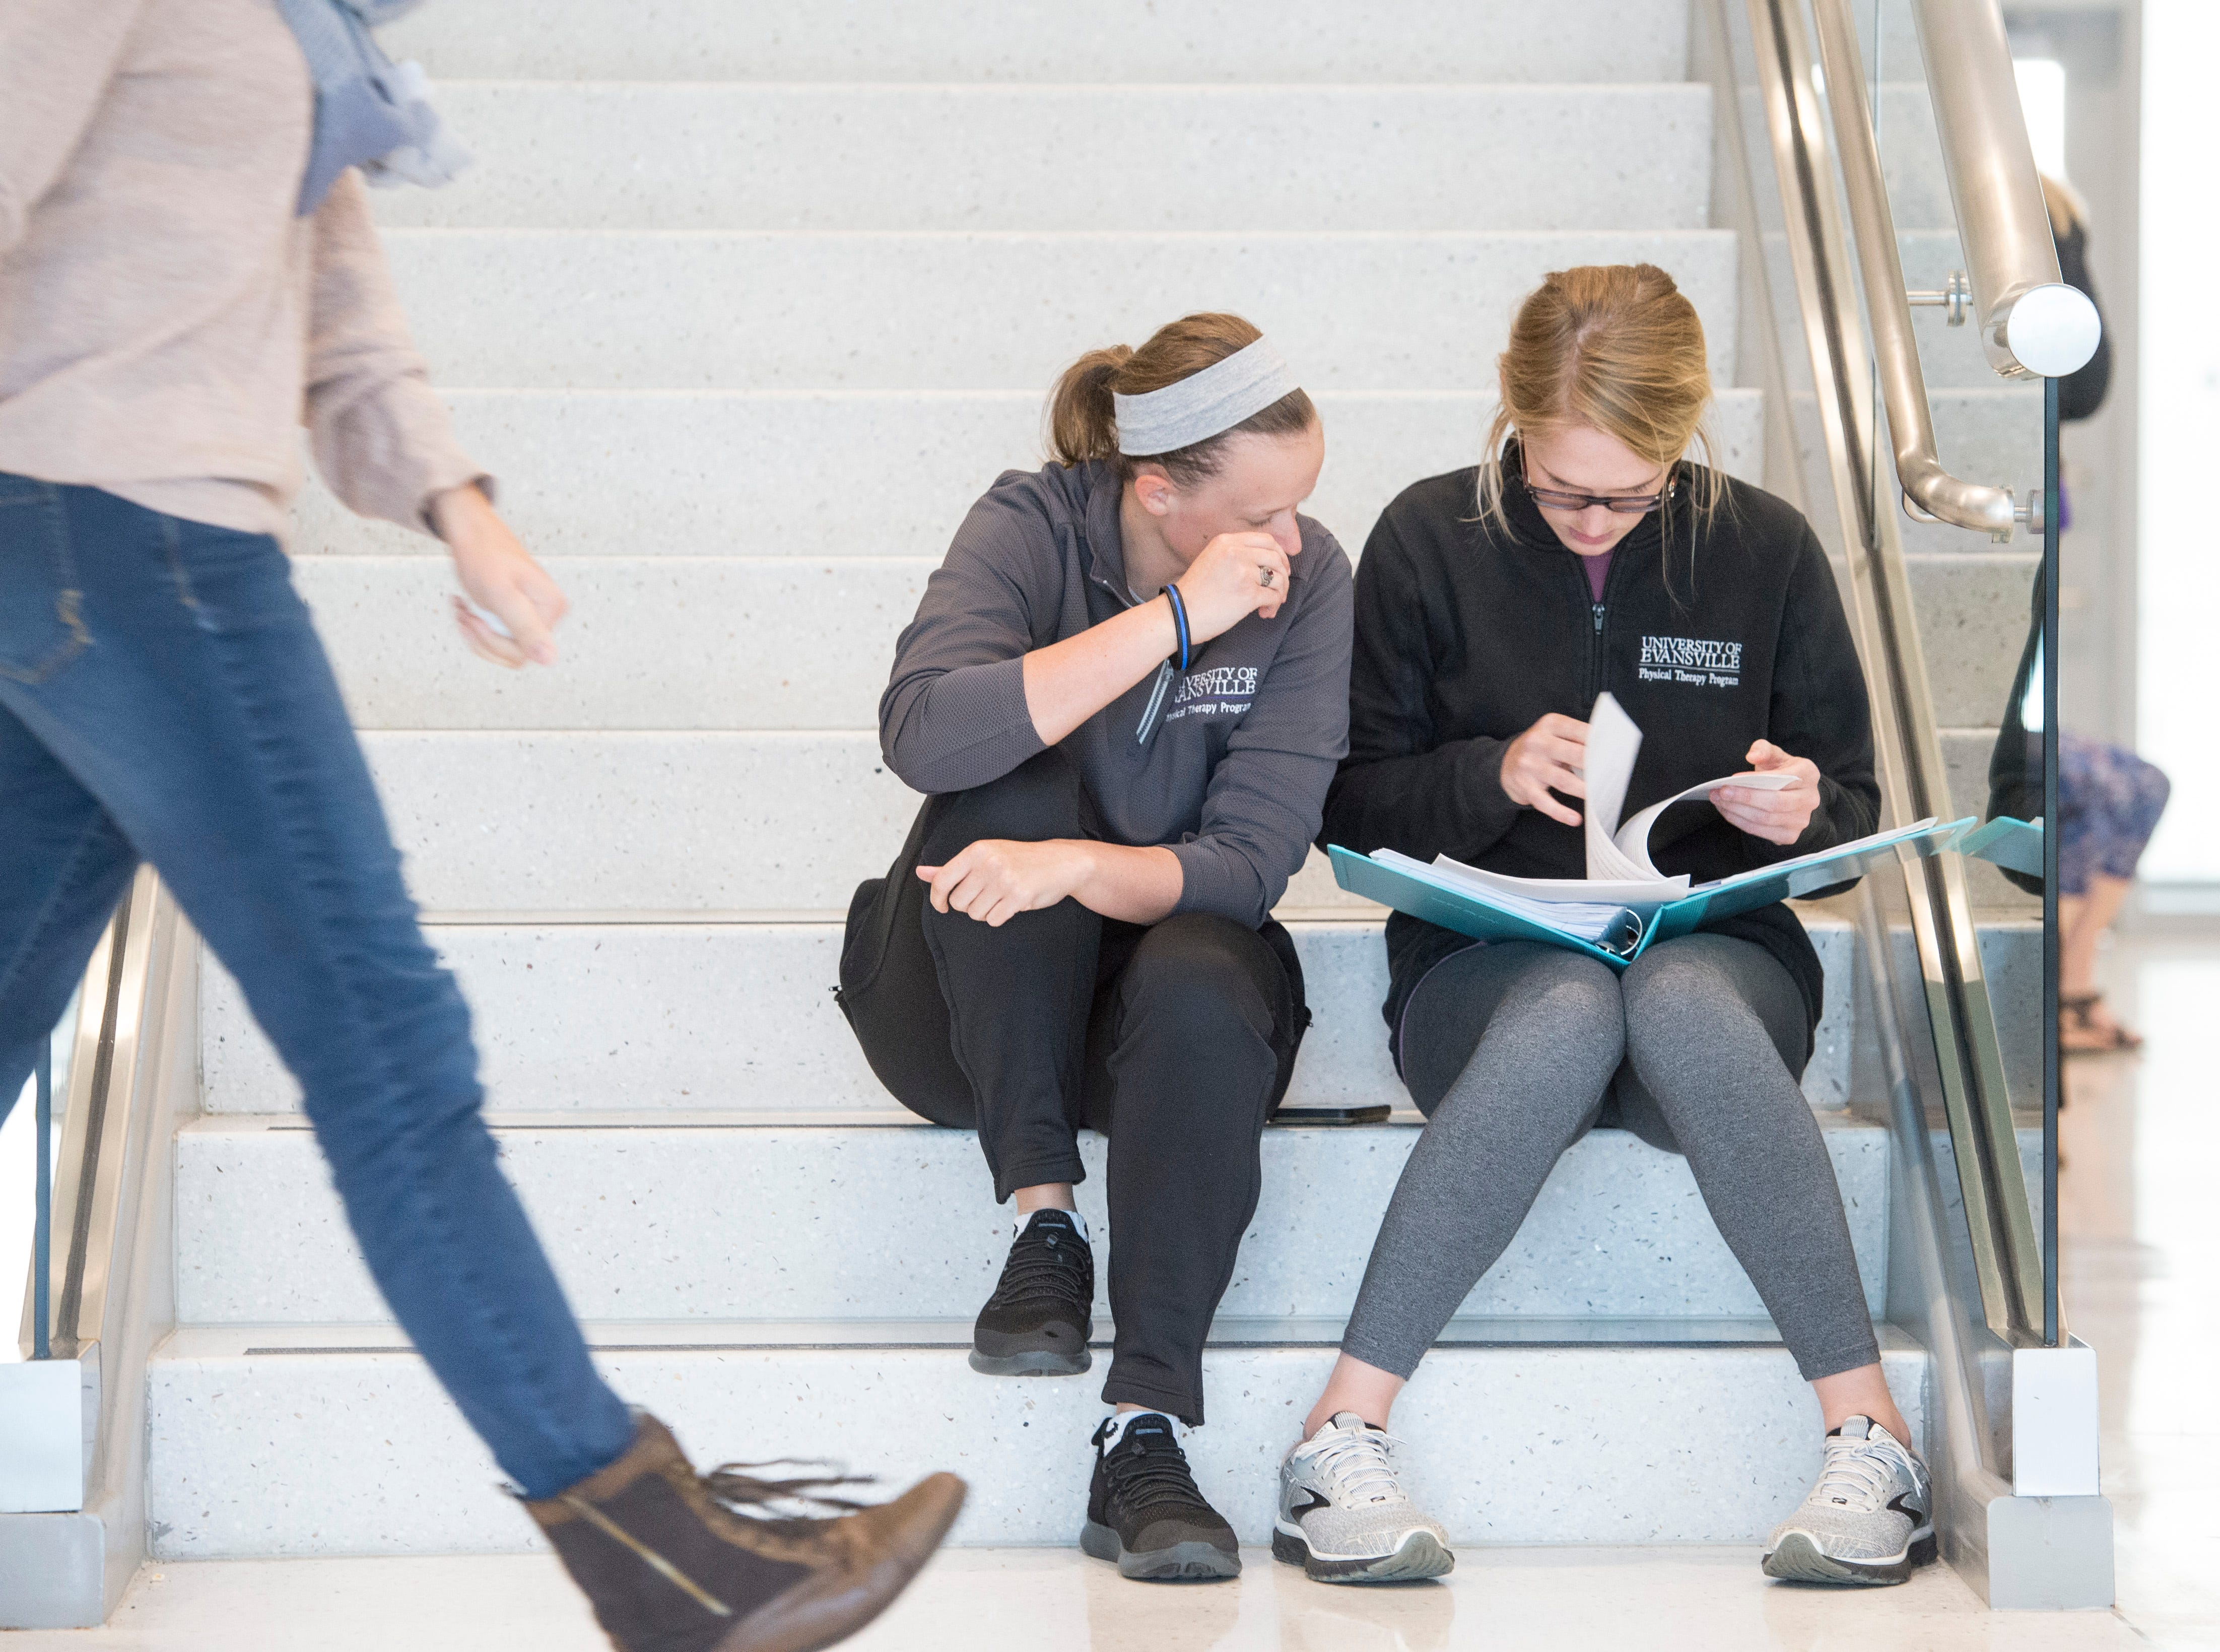 """Jessica Taul, left, and Kelsey Owen review notes on the steps inside the Stone Family Center for Health Sciences after a pharmacology test Thursday afternoon. Owen said """"just seeing what I got wrong and what I got right."""""""